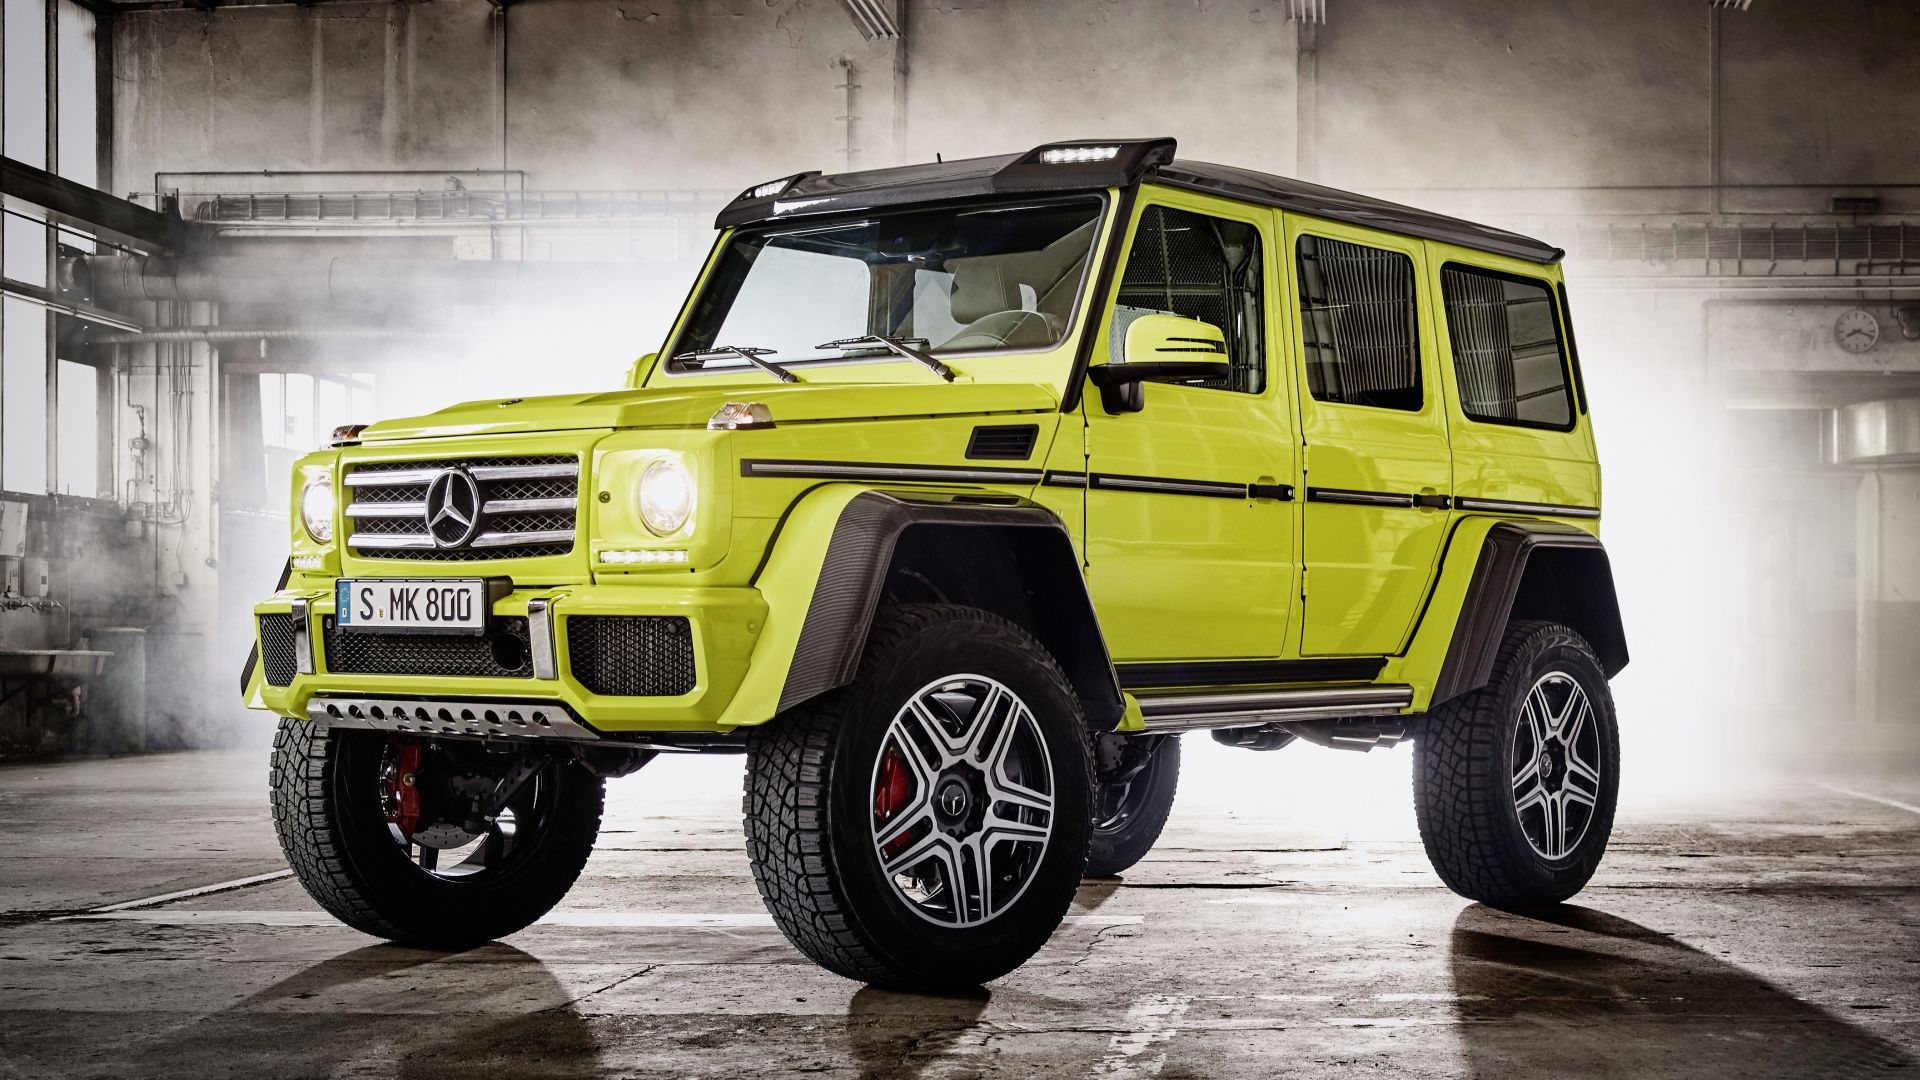 Mercedes-Benz G 500, SUV, Mercedes, G-Class, off-road, yellow, luxury cars (horizontal)